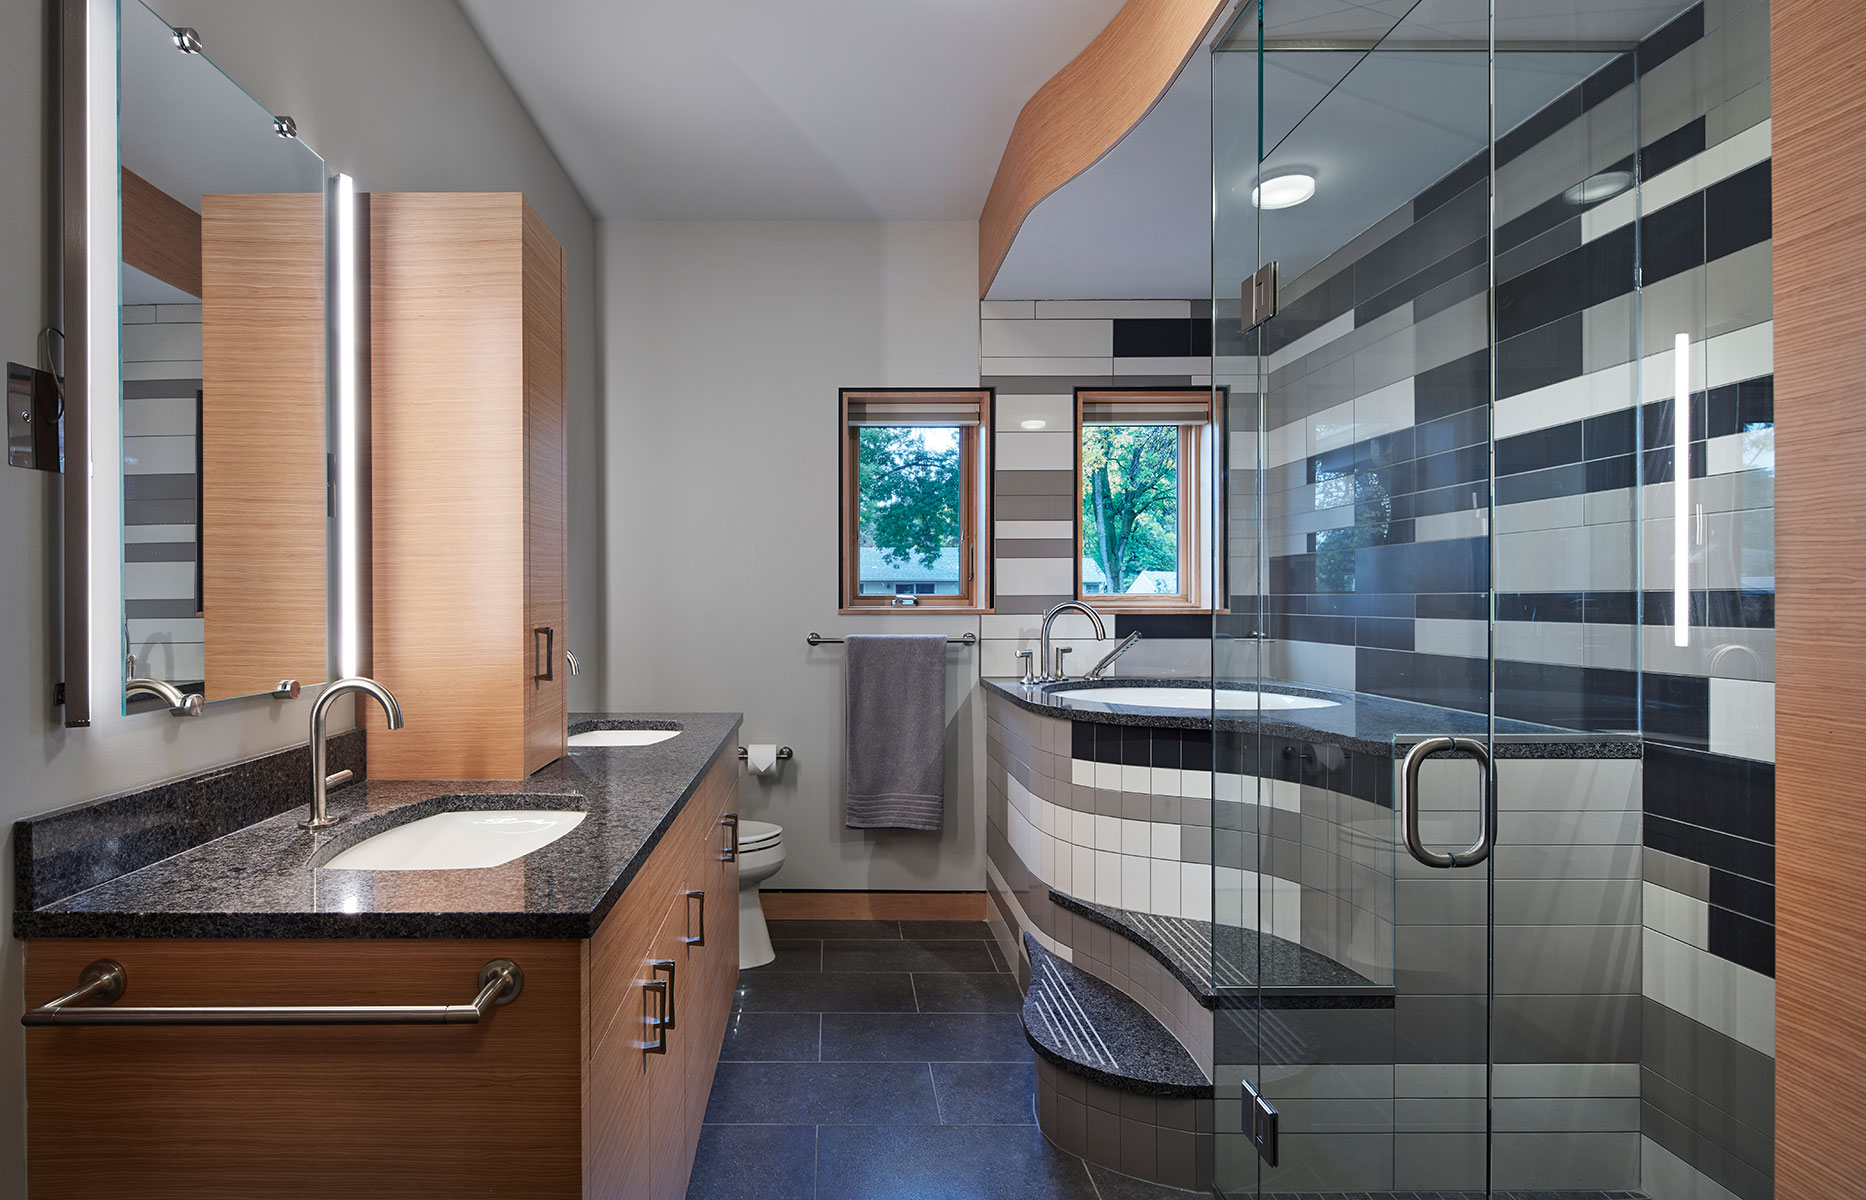 8-modern-sustainable-master-bath-minneapolis-interior-designer.jpg